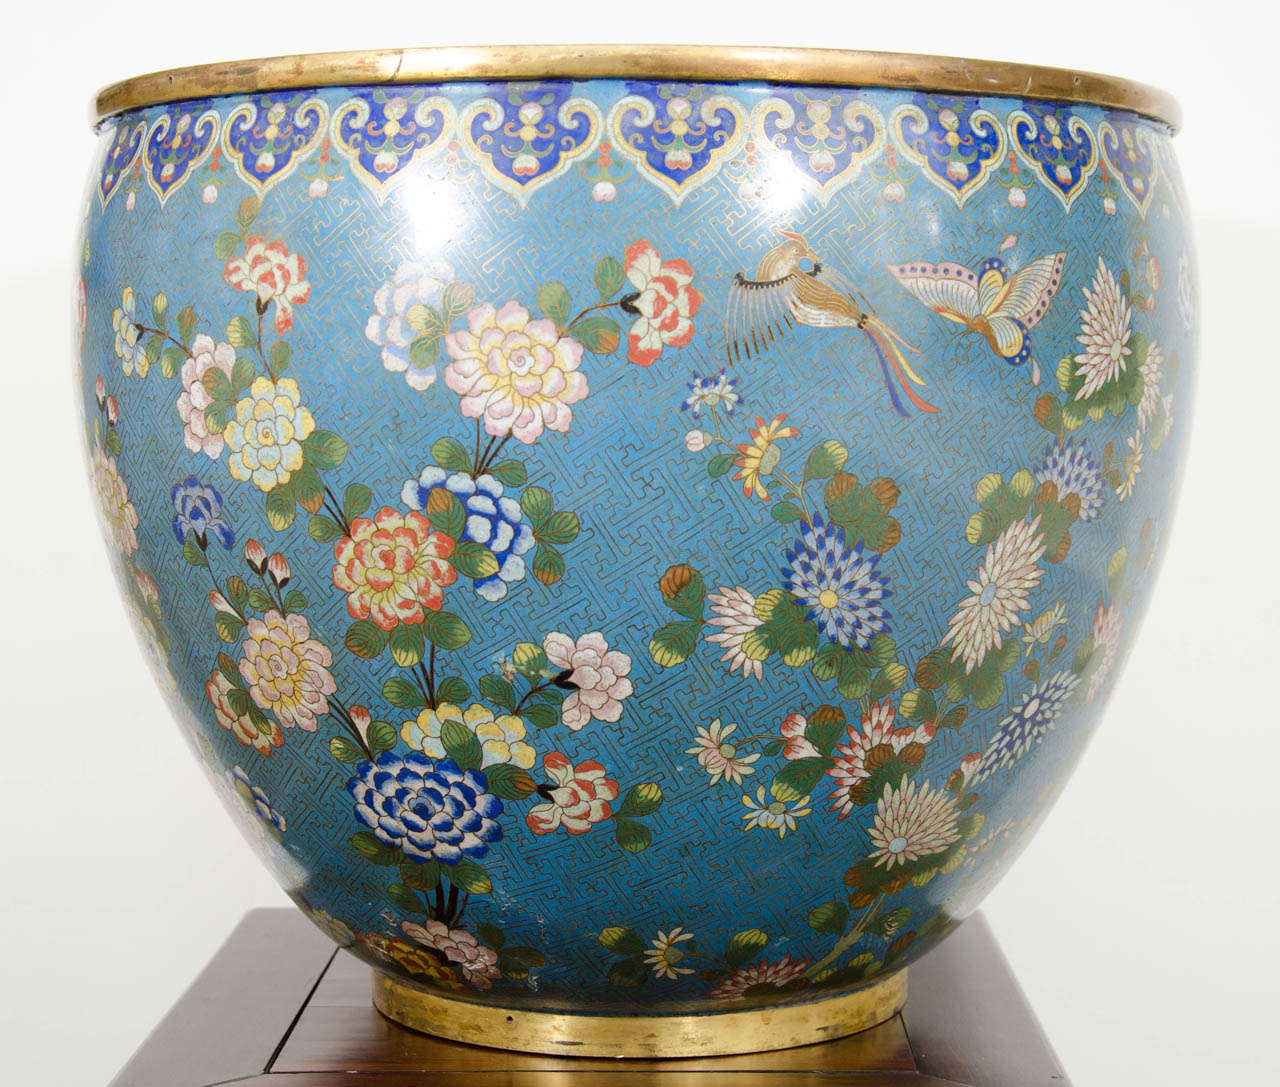 A Large 19th Century Daoguang Period Cloisonne Bowl Or Planter At 1stdibs